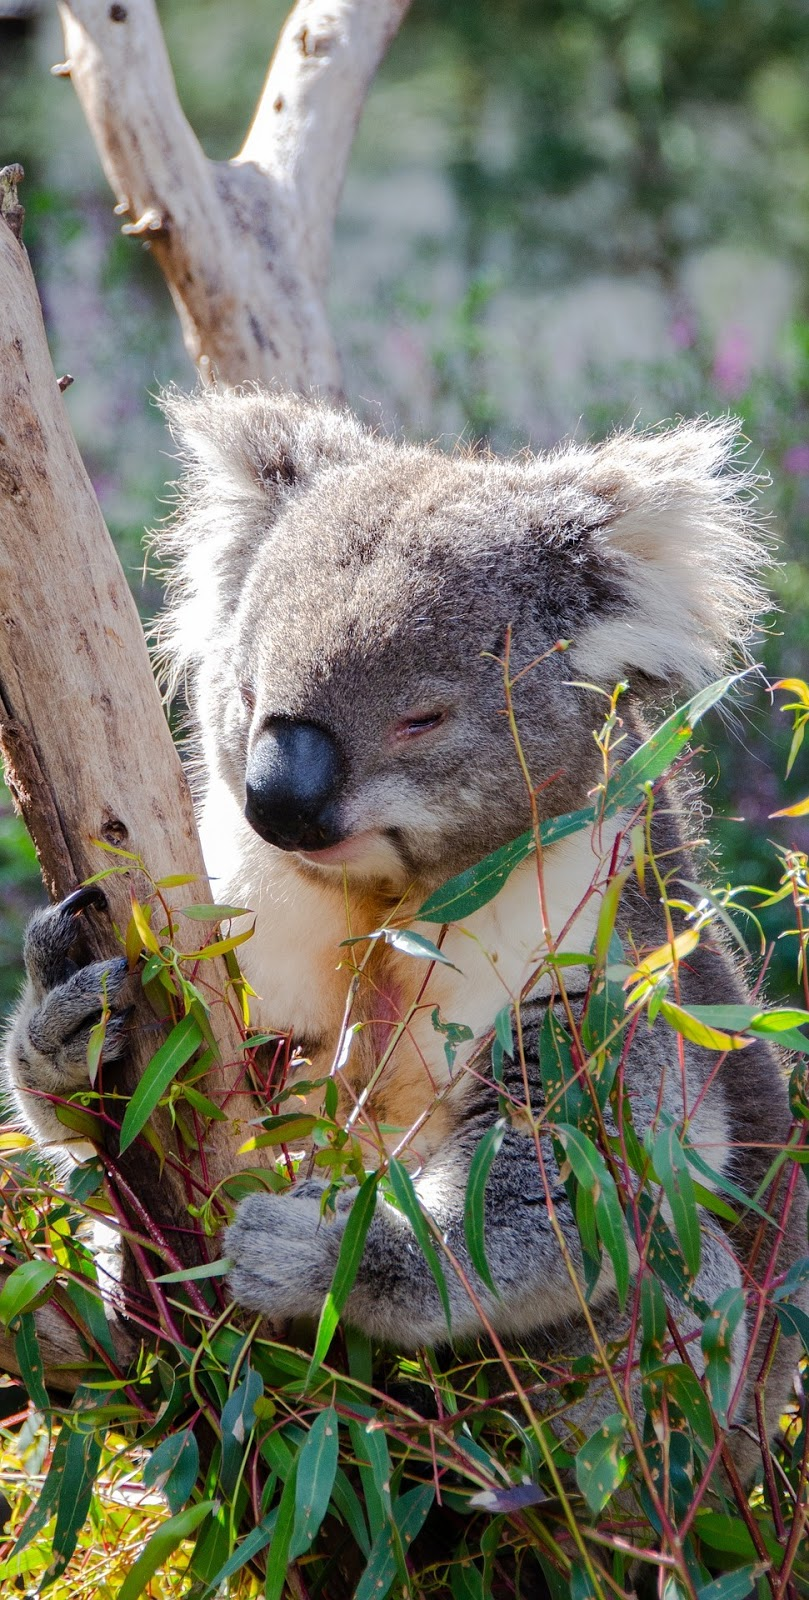 A koala eating eucalyptus tree leaves.